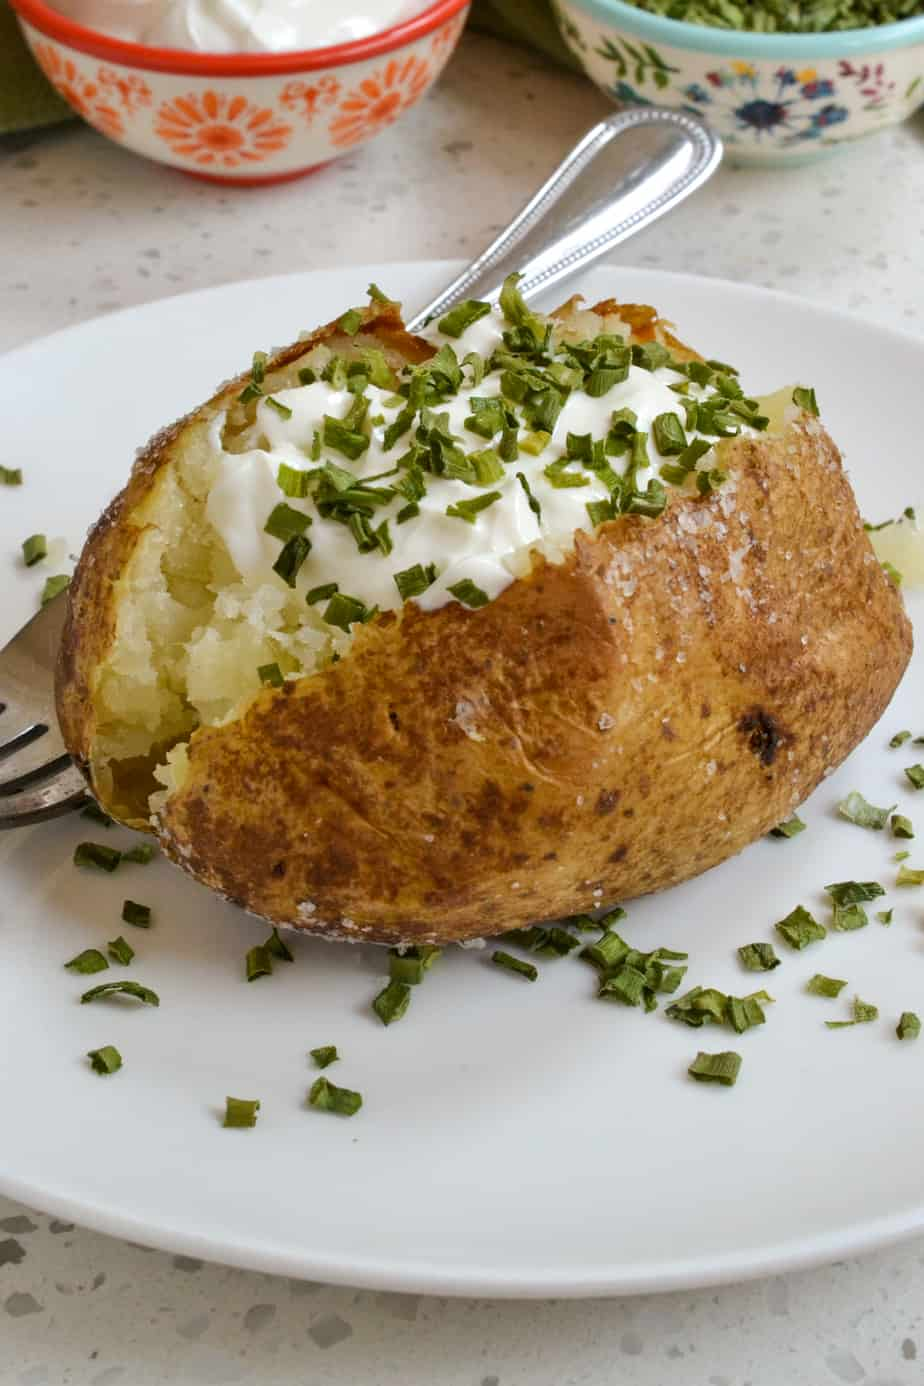 An oven baked potato with sour cream and chives.